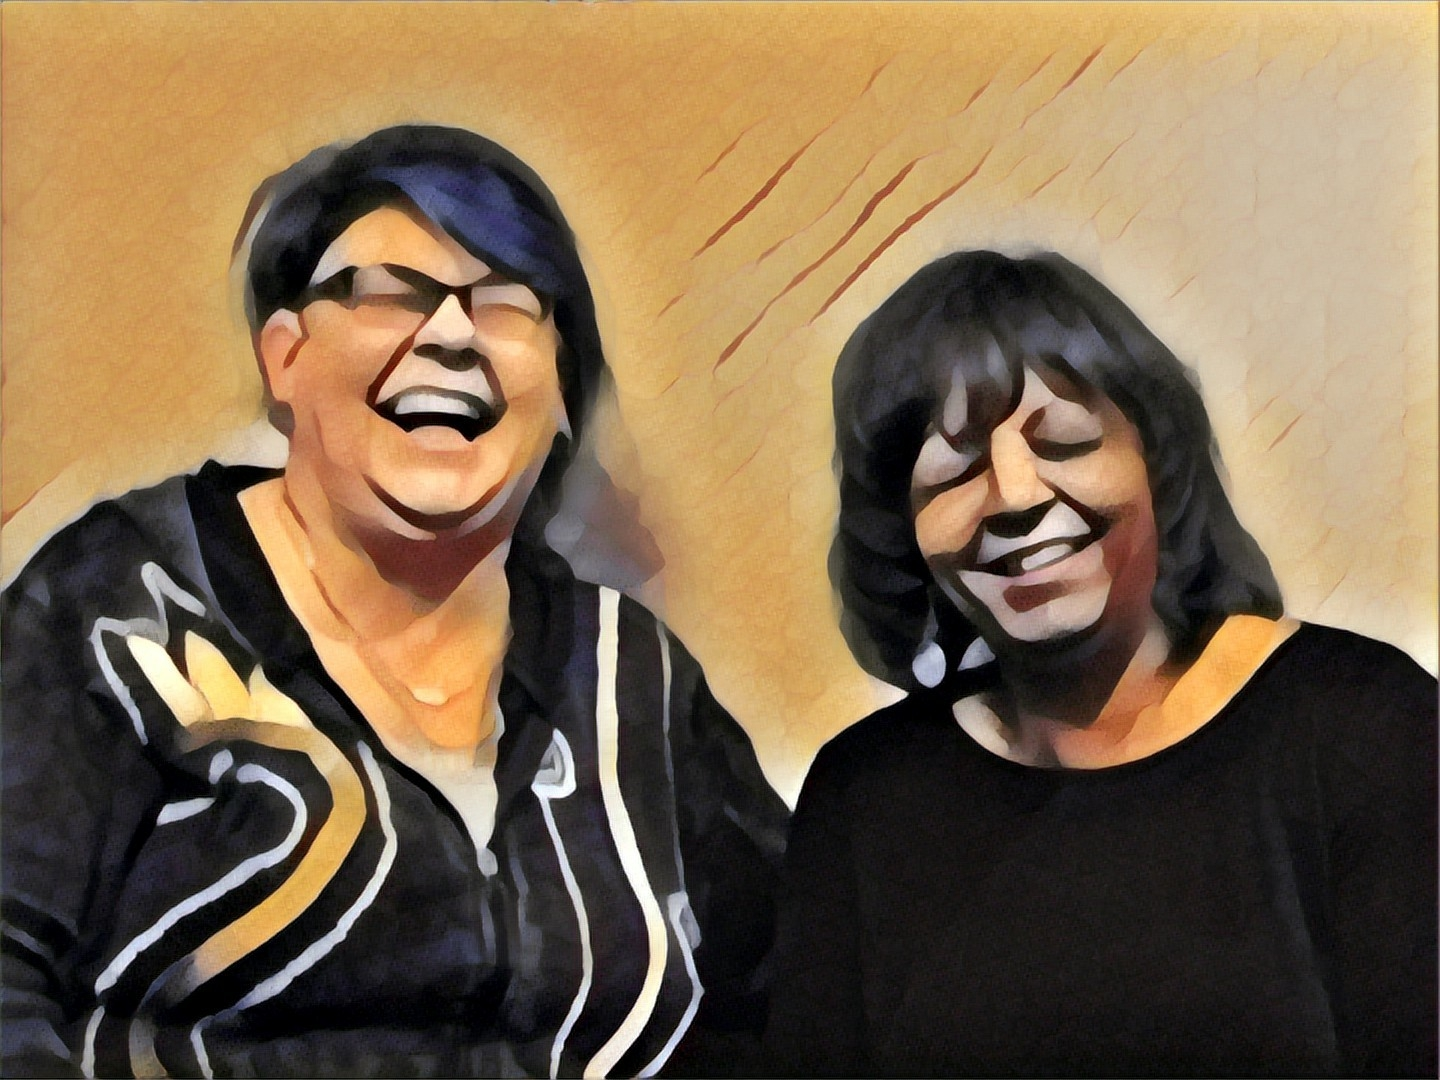 A moment of levity, as we look back on a decade of artful adventures at Art of the Carolinas (photo:  Laurel Rupe -- altered in the Prisma app)